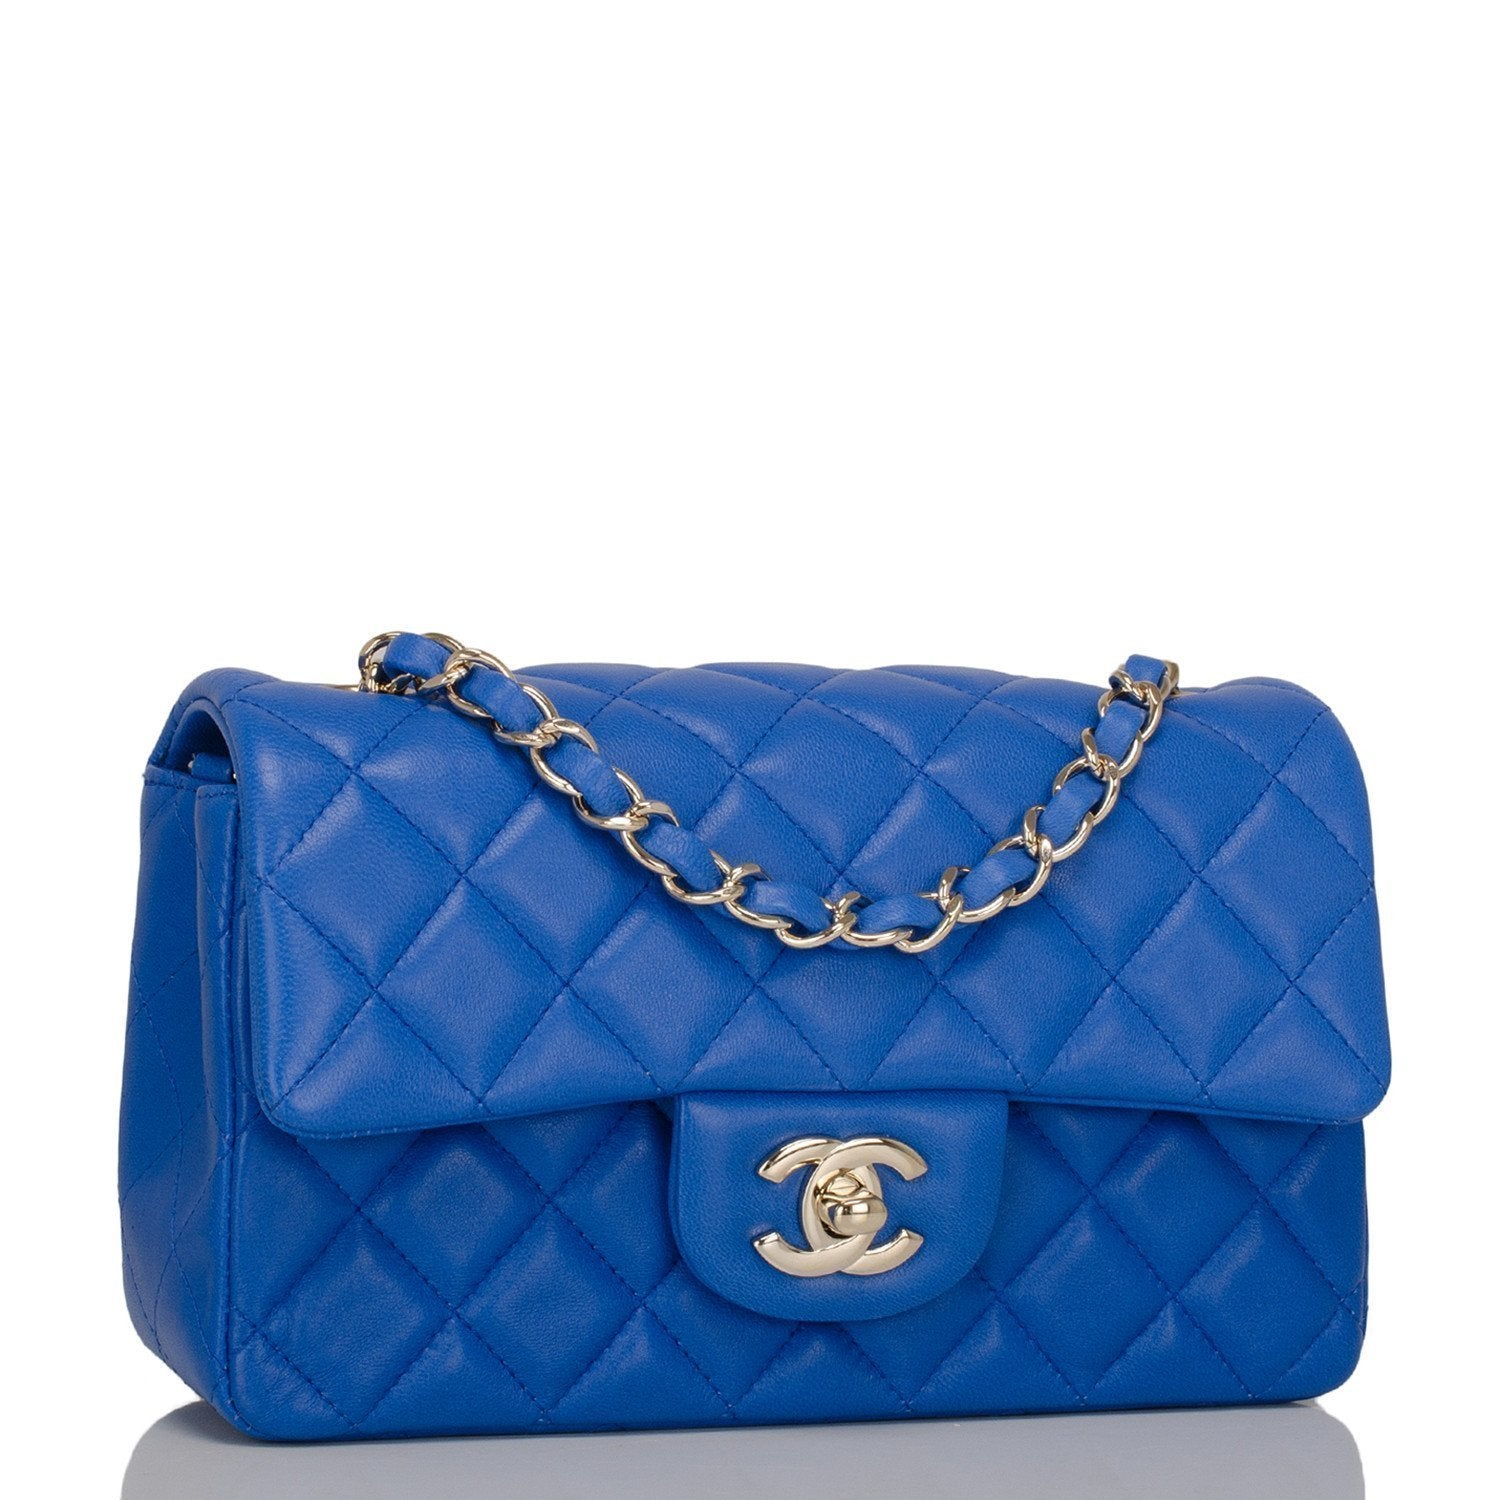 Chanel Blue Quilted Lambskin Rectangular Mini Classic Flap Bag Handbags